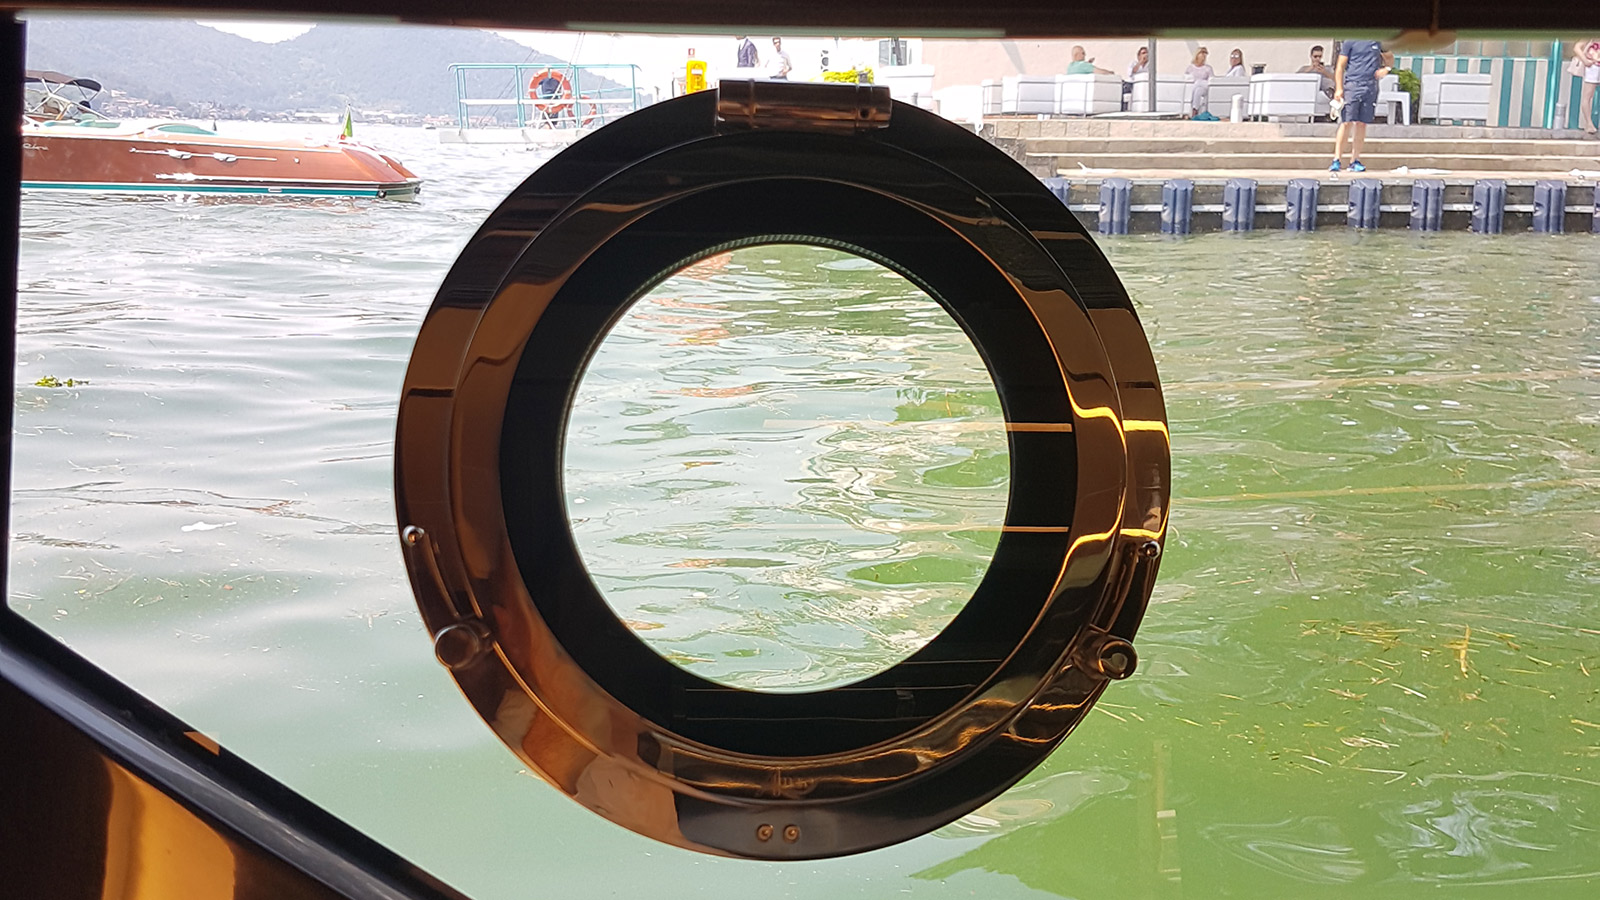 porthole-of-the-riva-56-rivale-speedboat